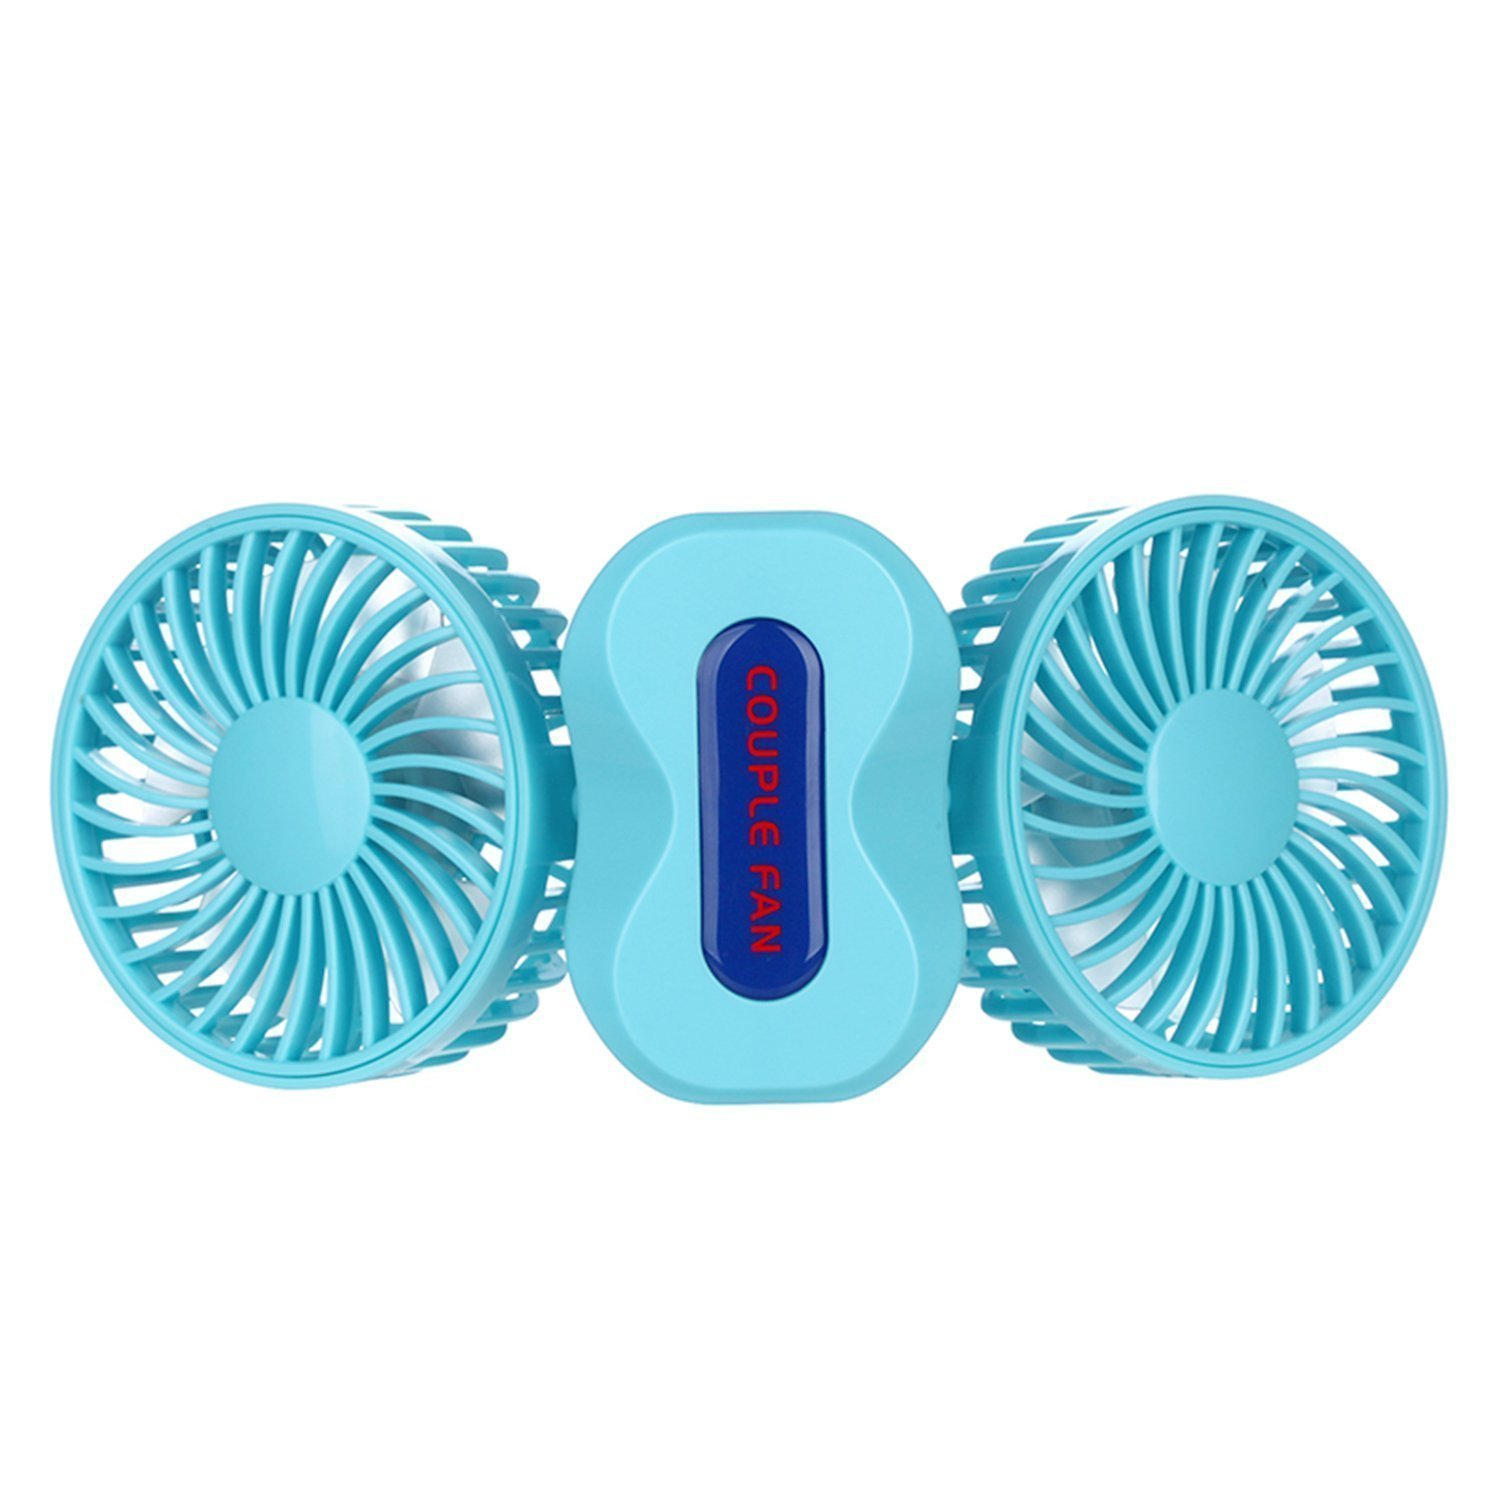 Quiet Small Fan Portable Personal Fan Battery Operated Couples Mini USB Rechargeable Table Fan Electric Handheld Fan Cooling for Home Travel Bedroom Office Hiking Desk Kids Outdoor Camping (Blue)